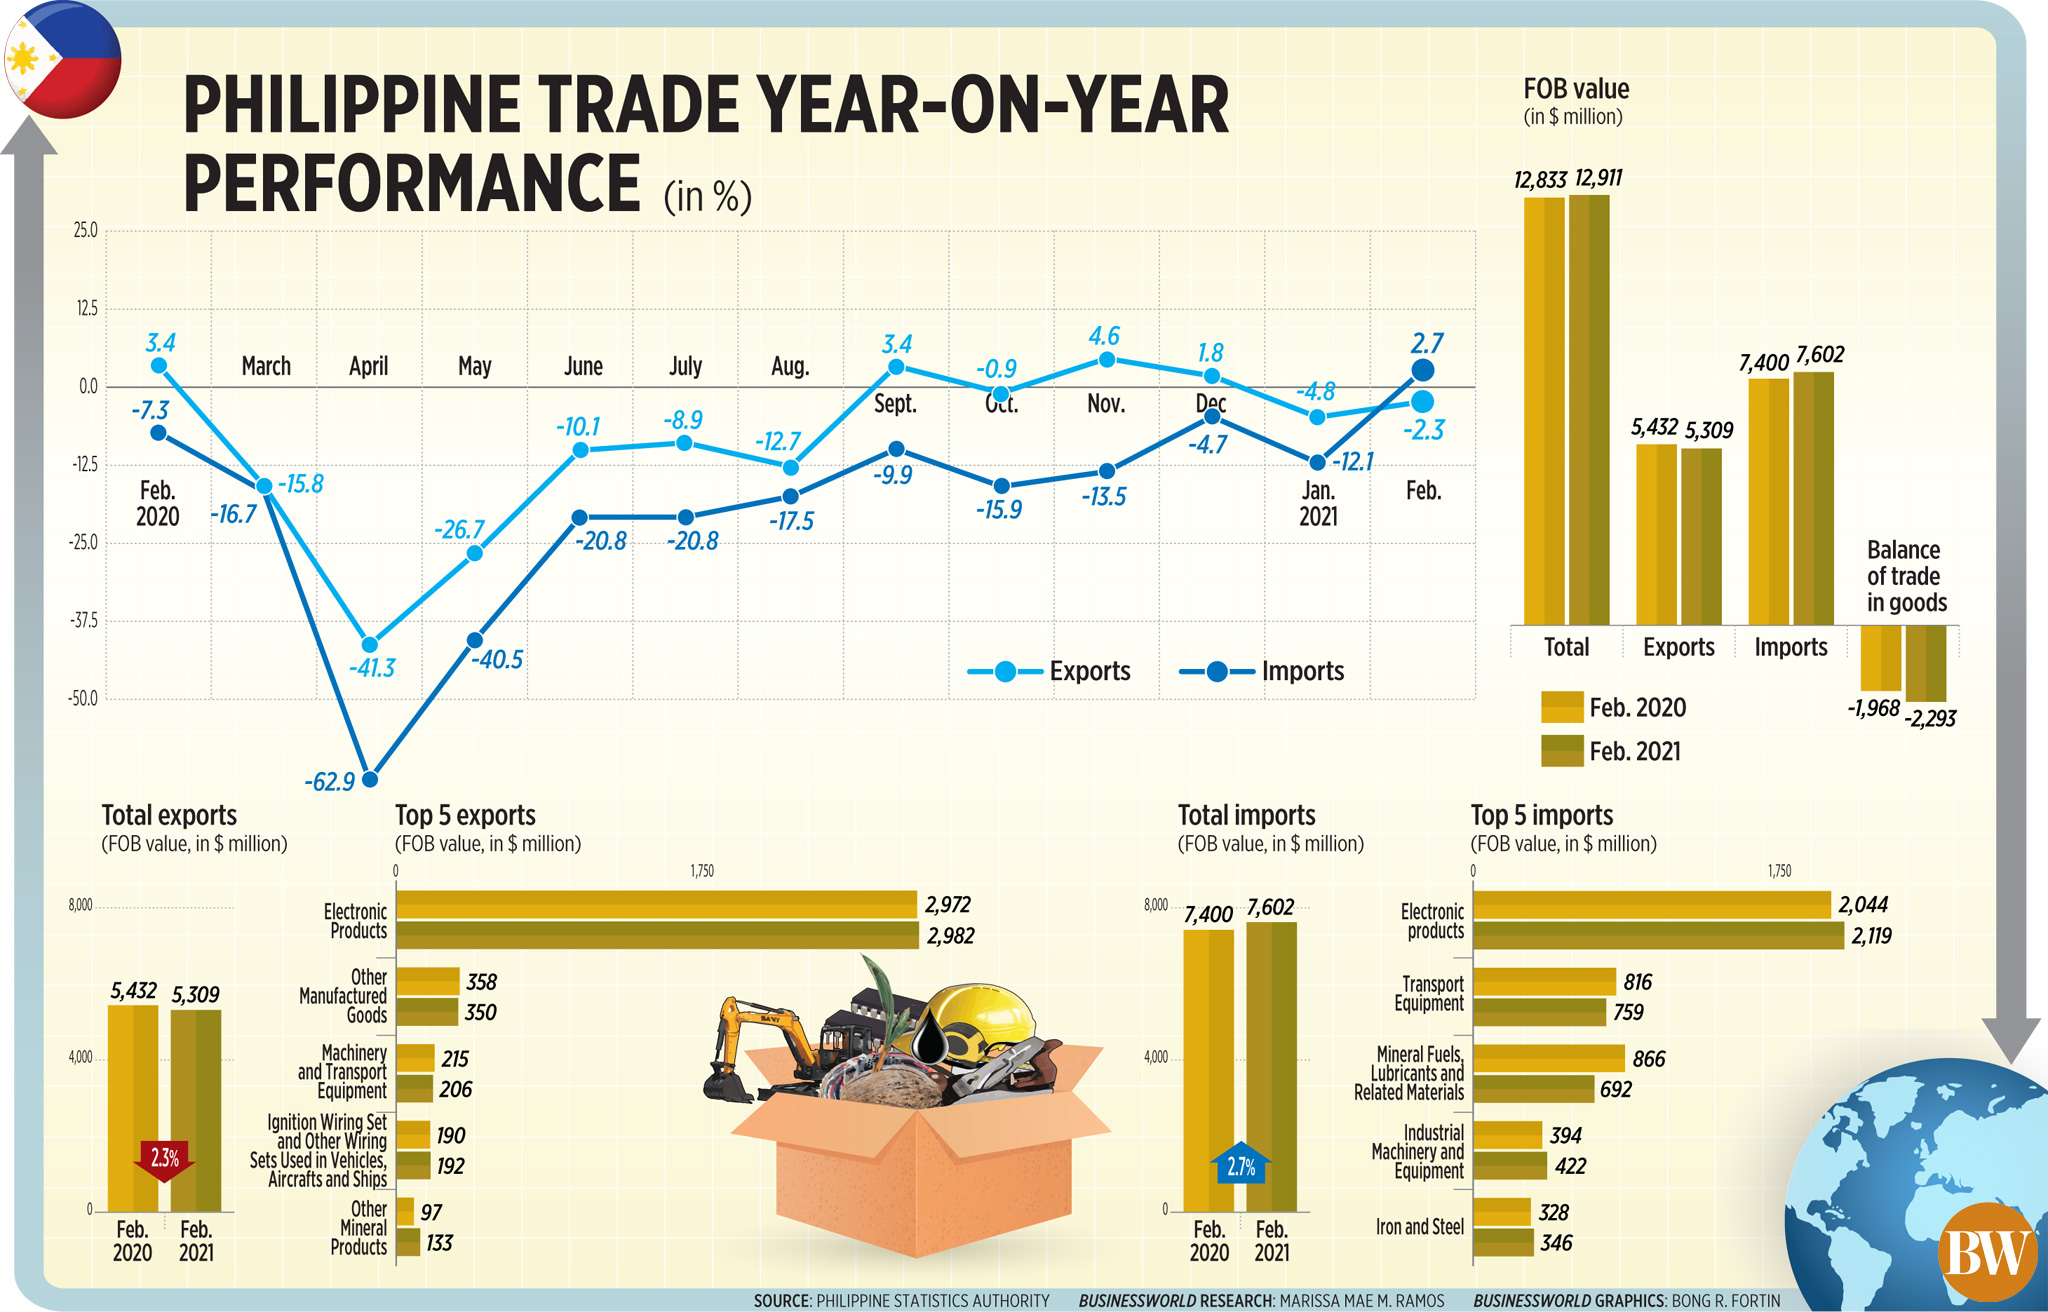 Philippine trade year-on-year performance (Feb. 2021)